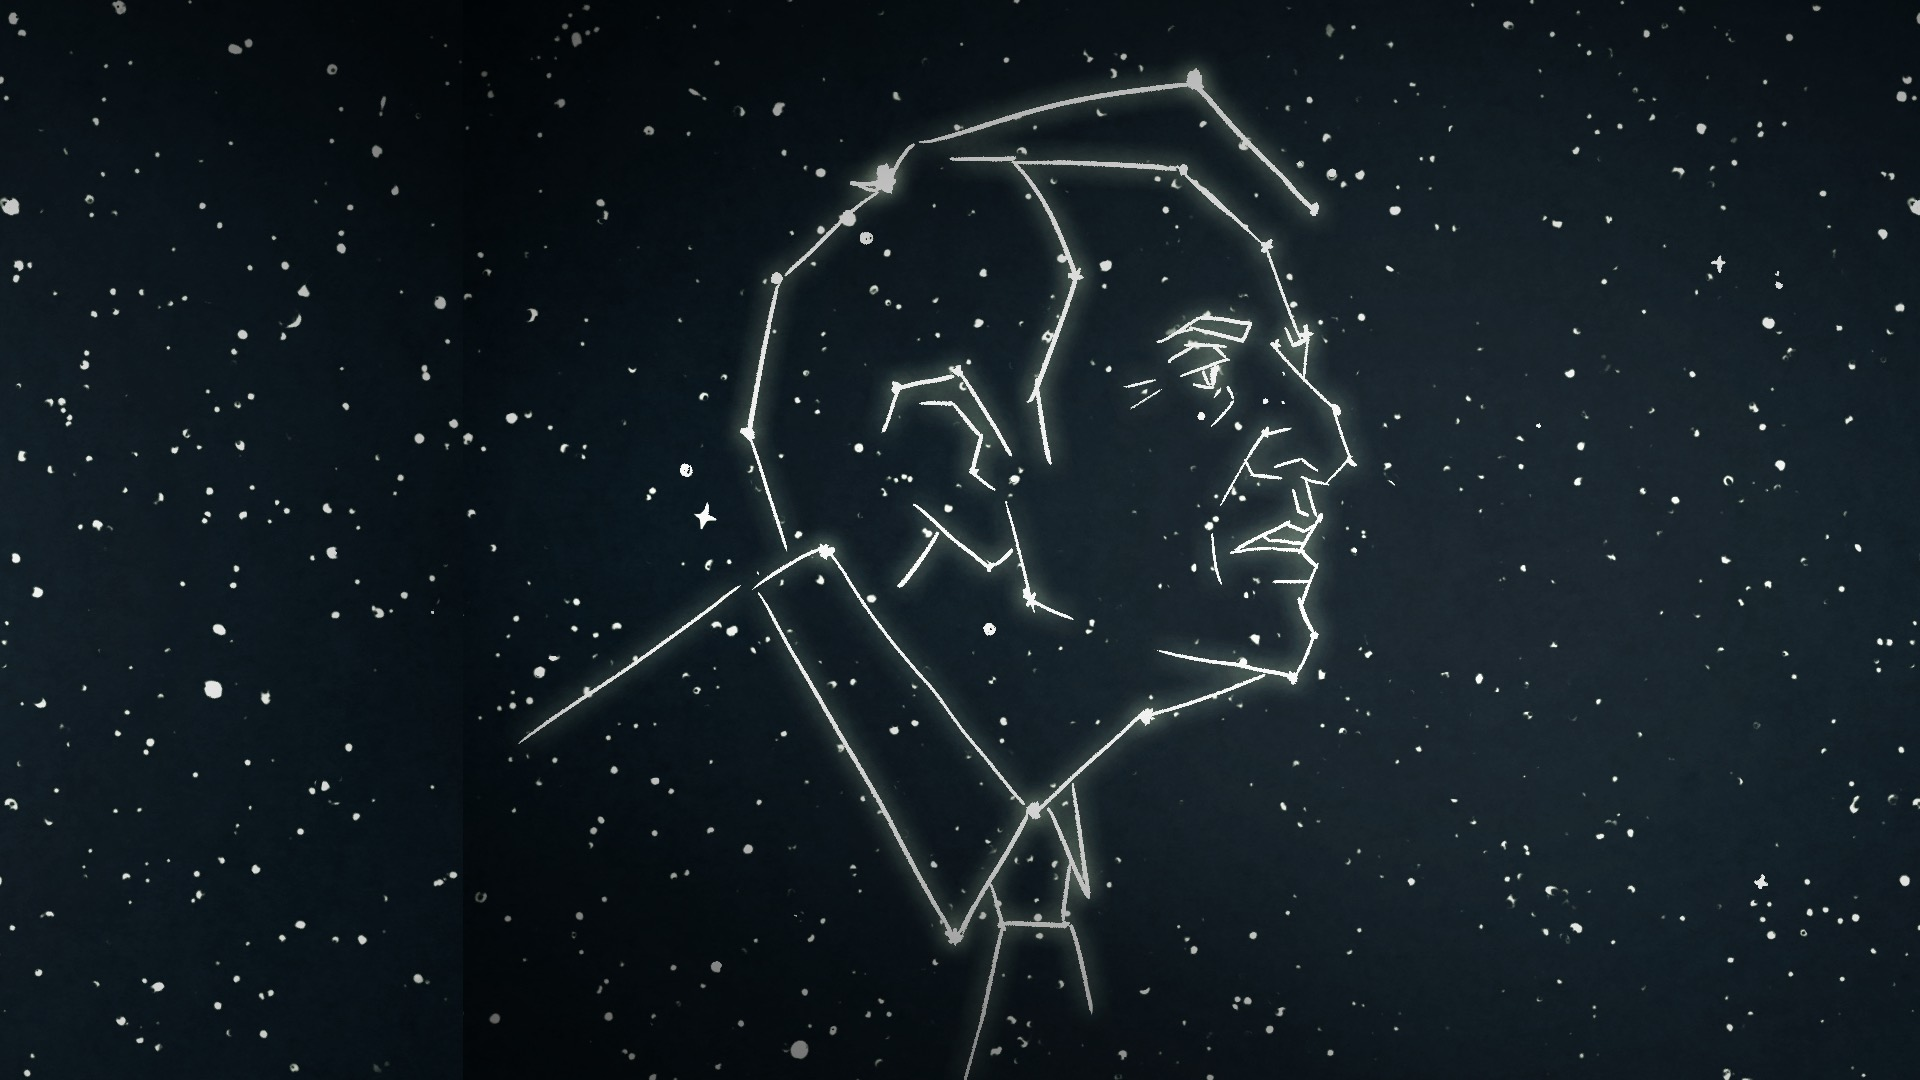 Cosmos Quotes Wallpaper Carl Sagan On Extraterrestrials Blank On Blank